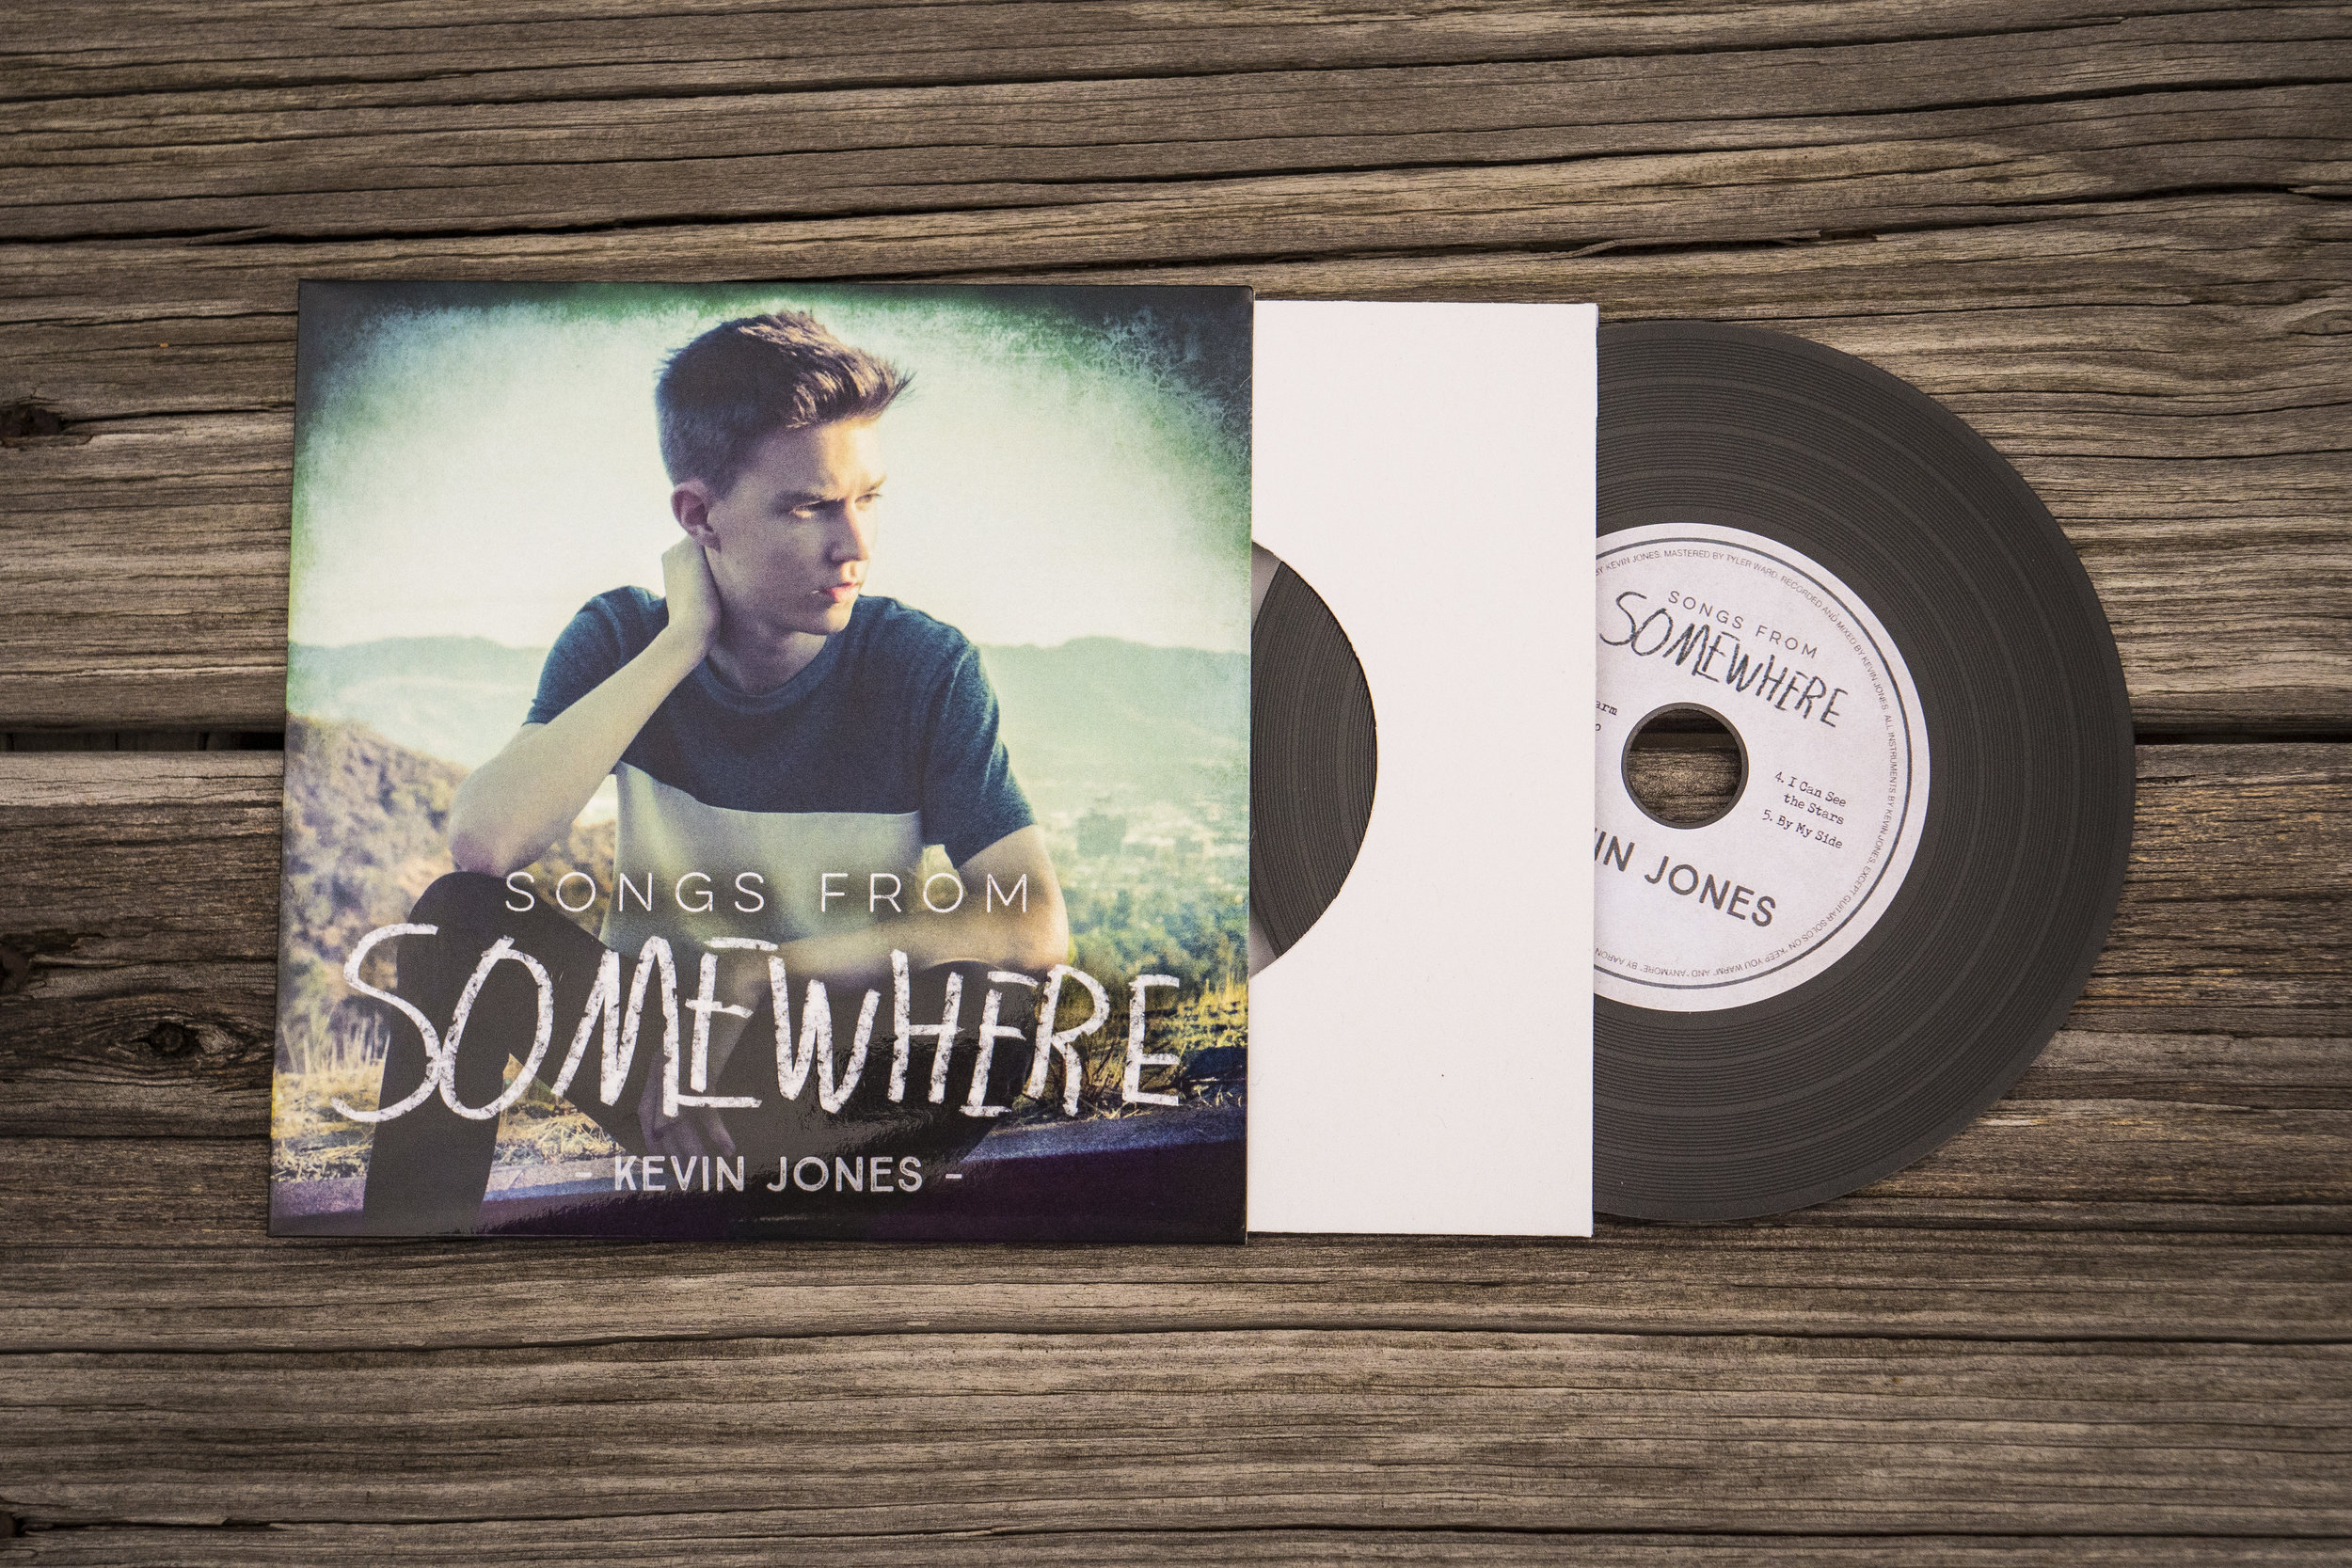 CD - Songs from Somewhere